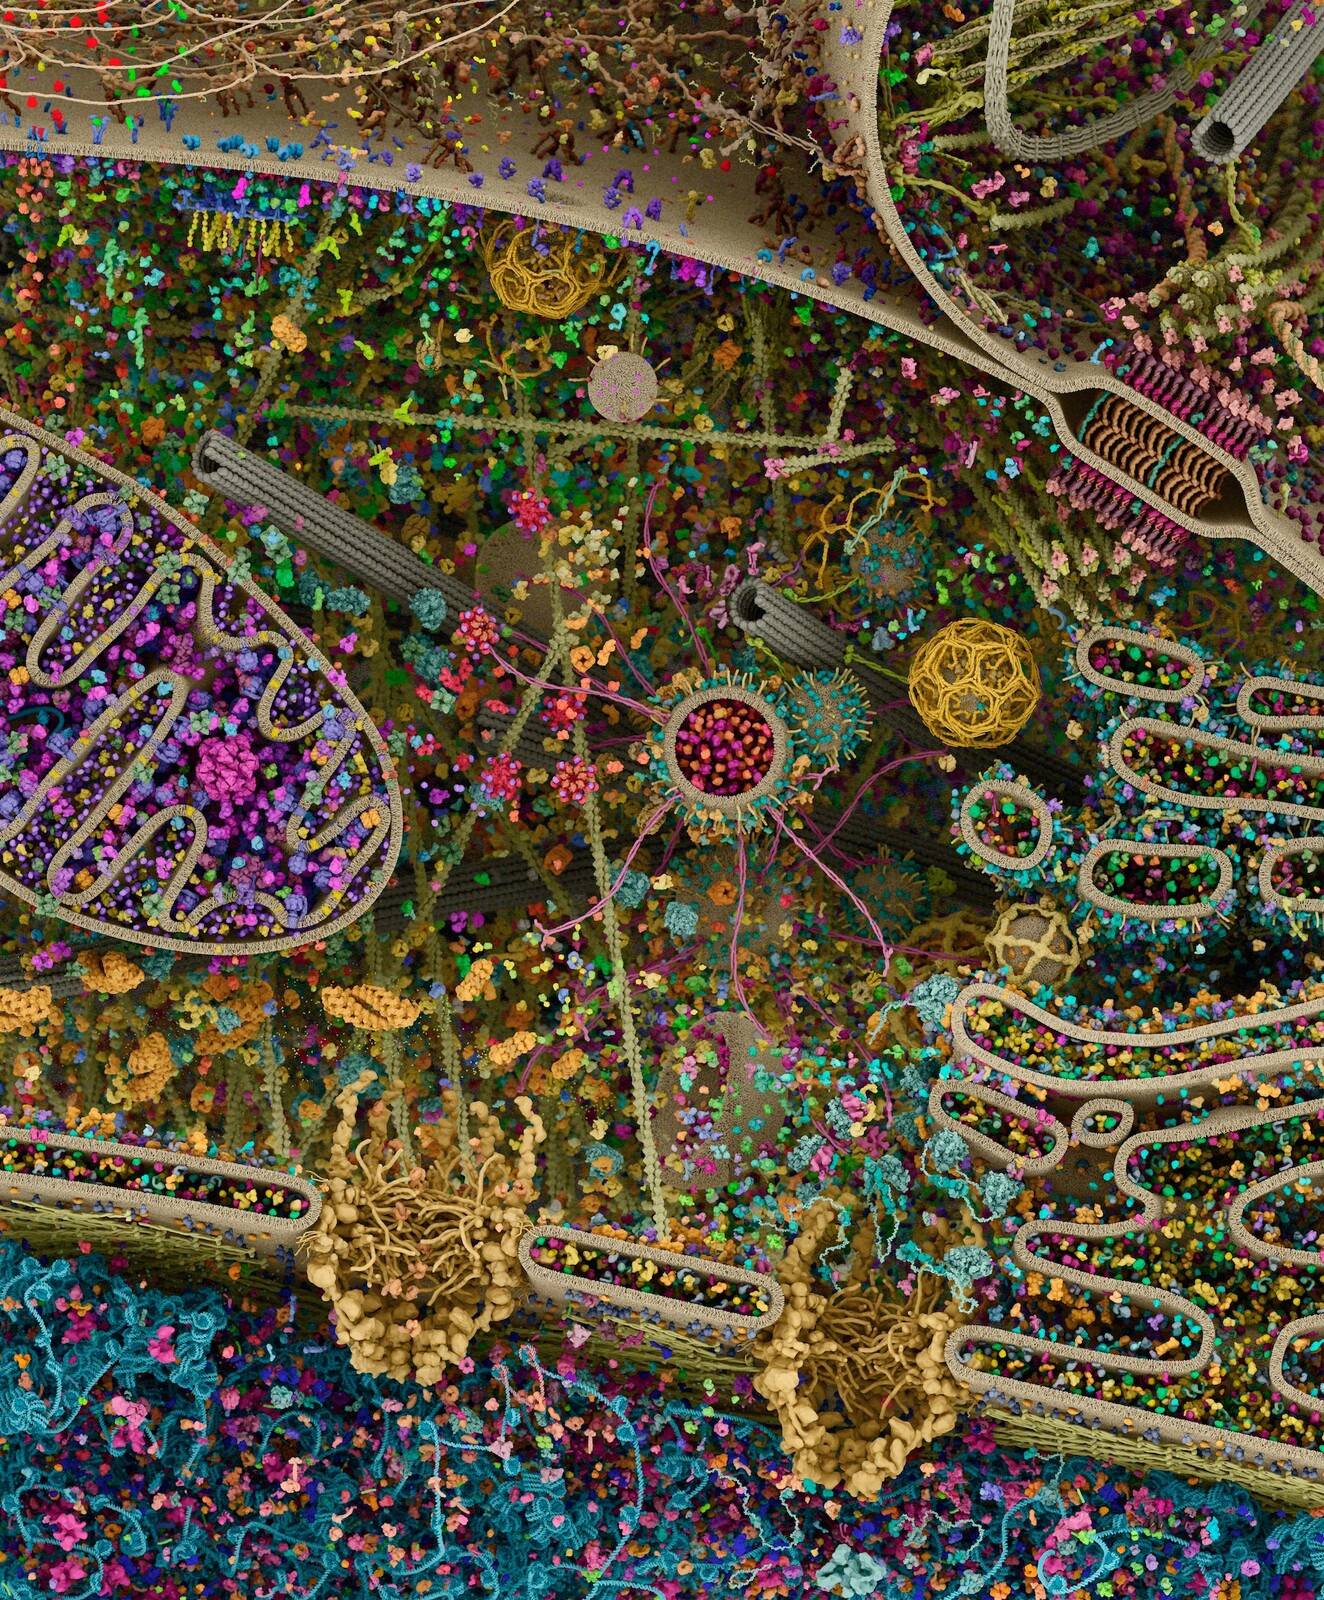 Cellular landscape cross-section through a eukaryotic cell, by Evan Ingersoll & Gael McGill - Digizyme's Molecular Maya custom software, Autodesk Maya, and Foundry Modo used to import, model, rig, populate, and render all structural datasets